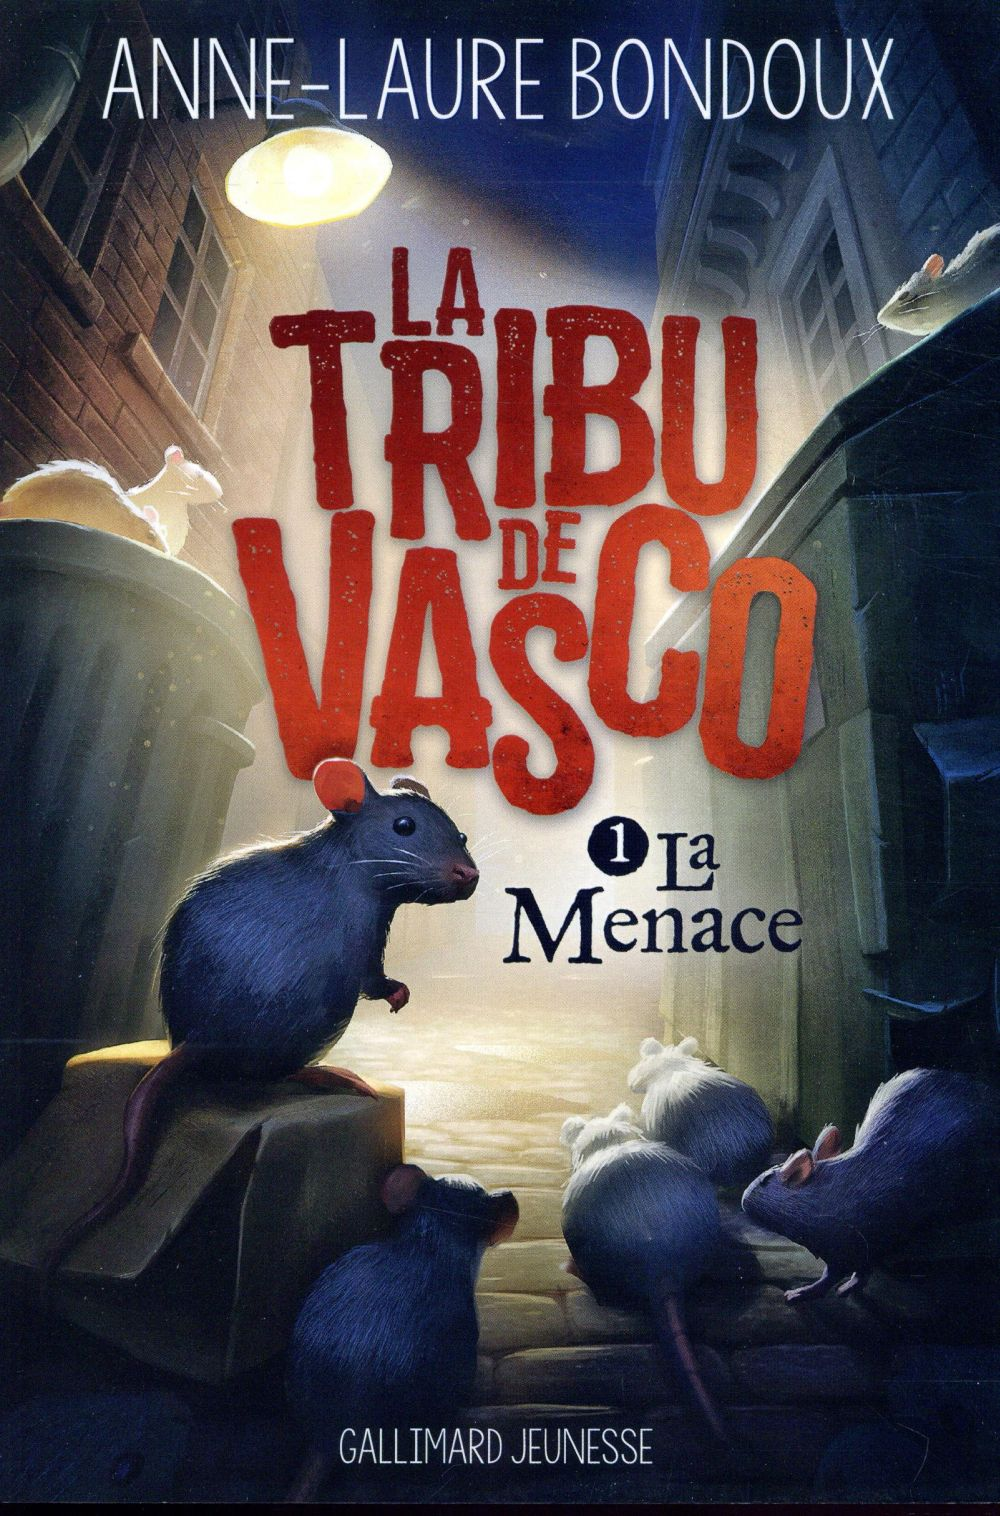 La tribu de vasco t.1 ; la menace